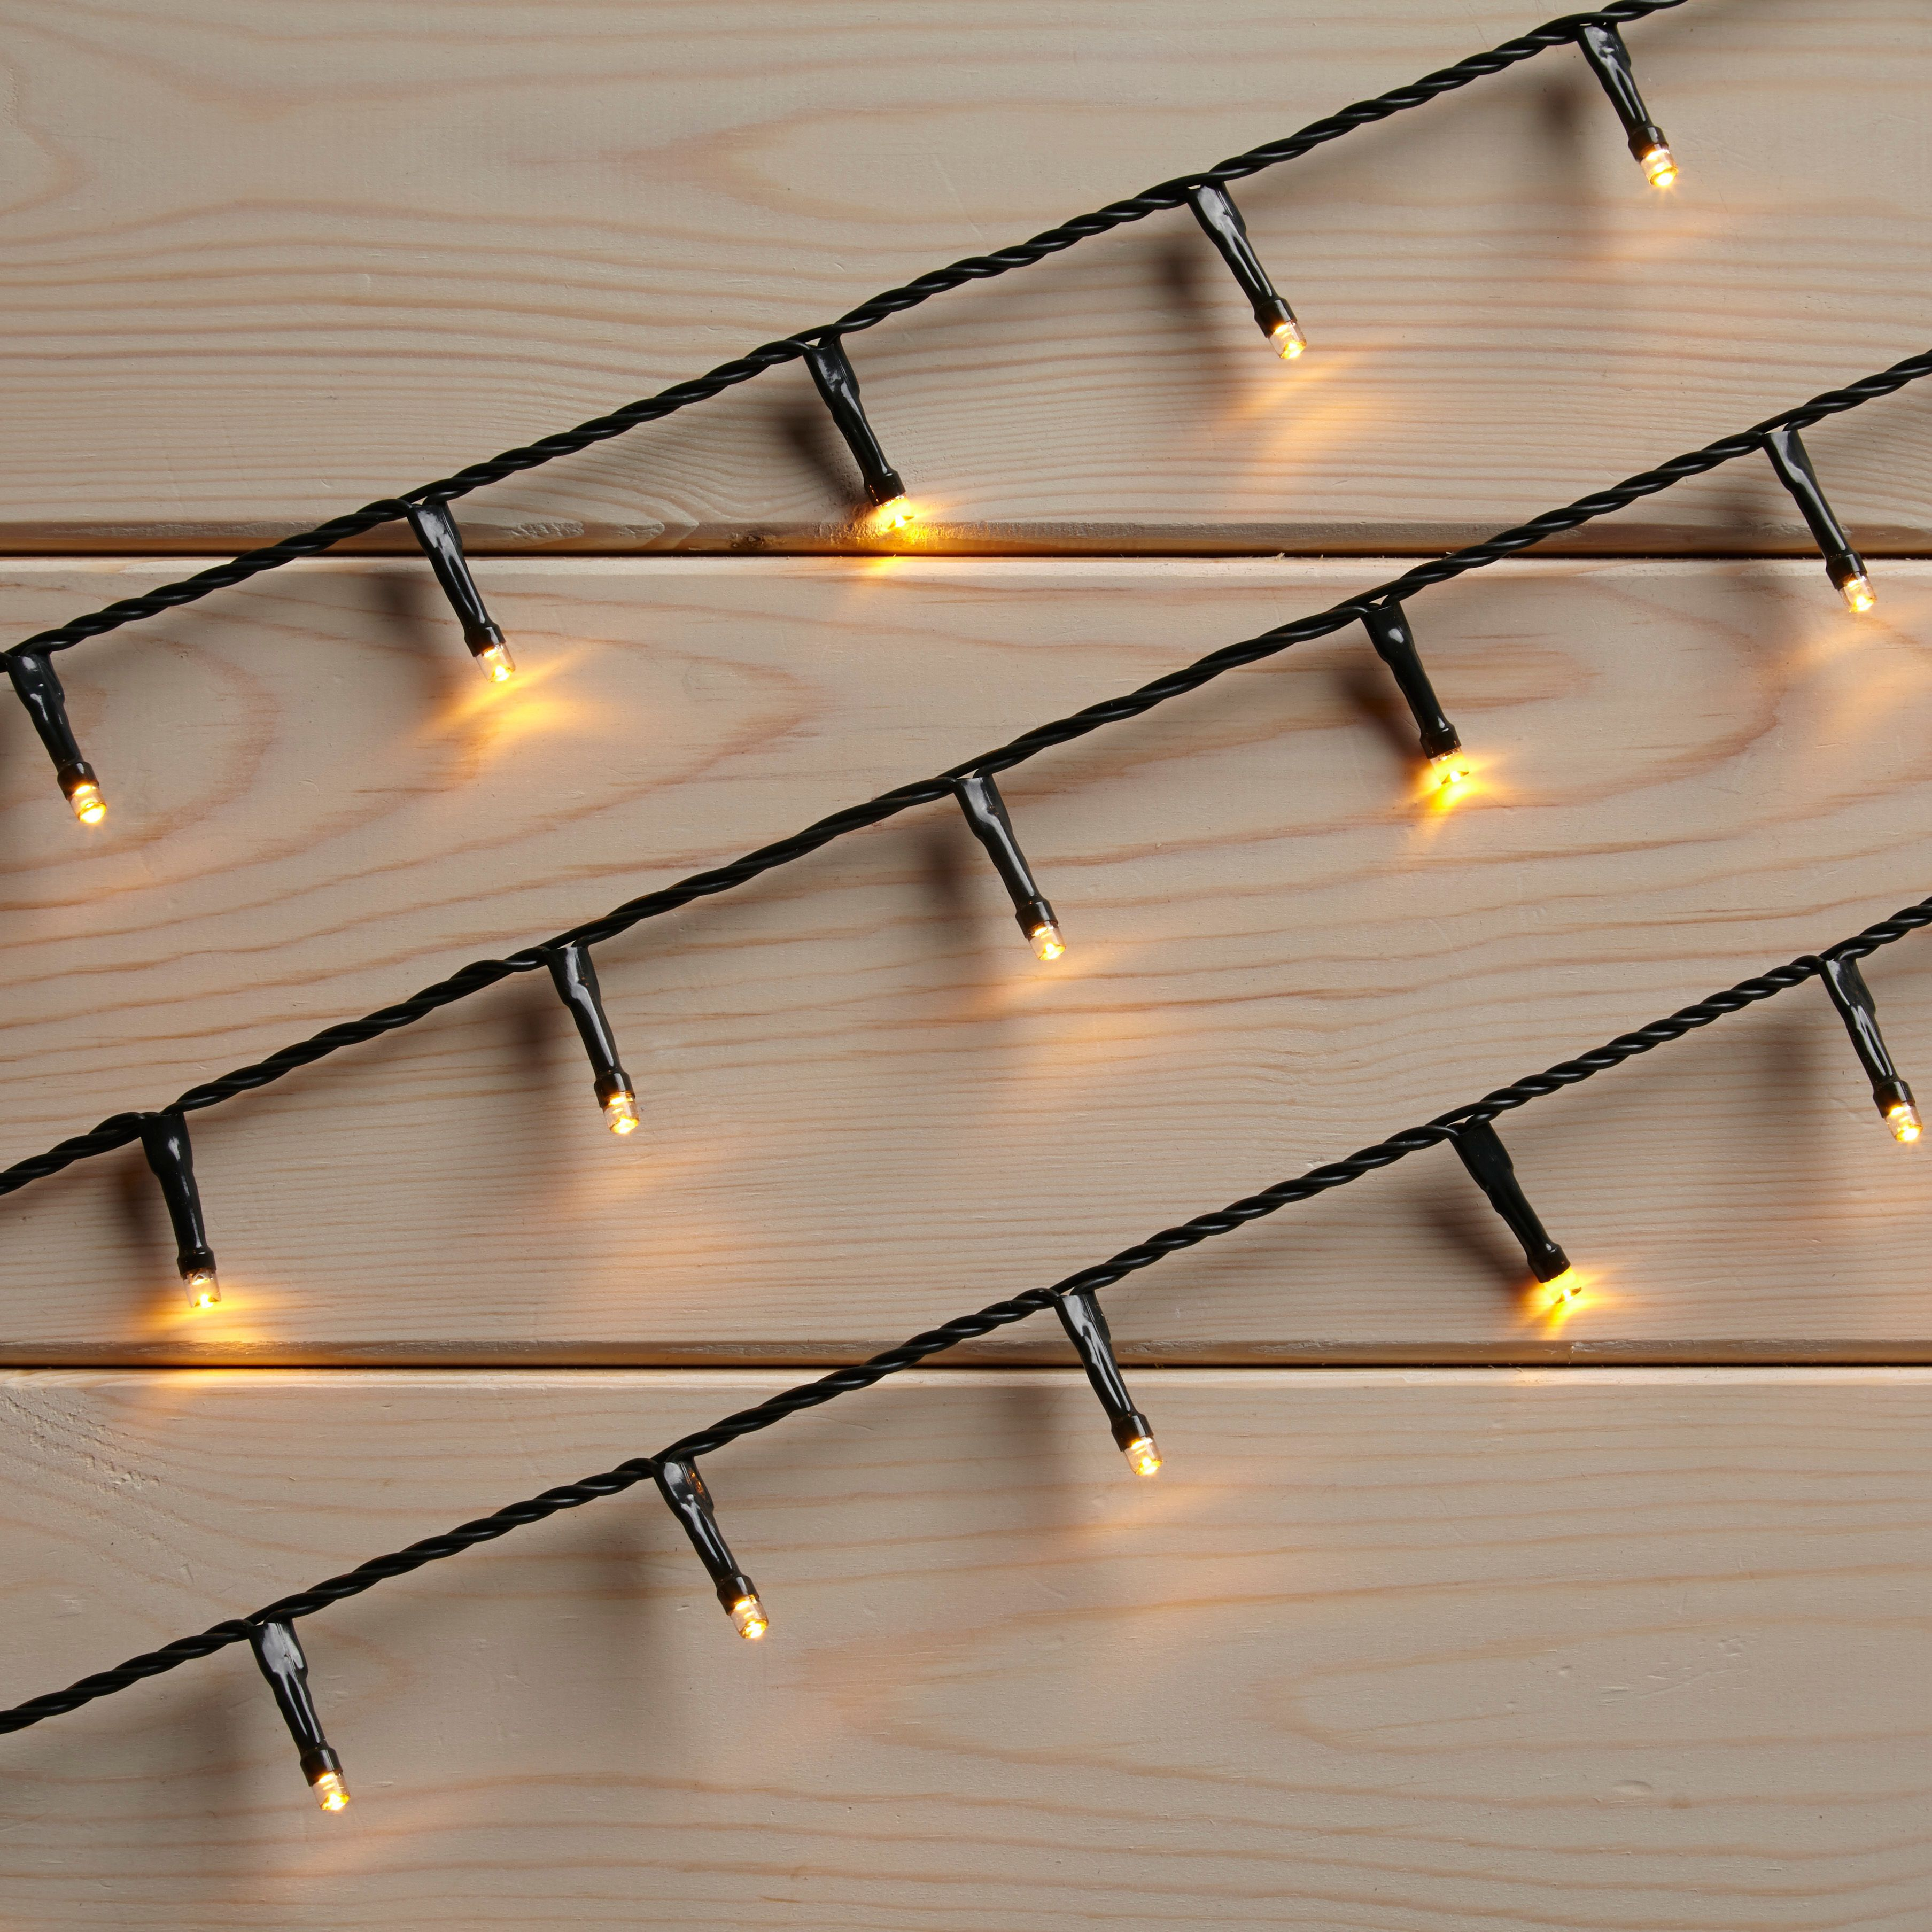 Led String Lights Diy : 120 Soft Glow LED String Lights Departments DIY at B&Q